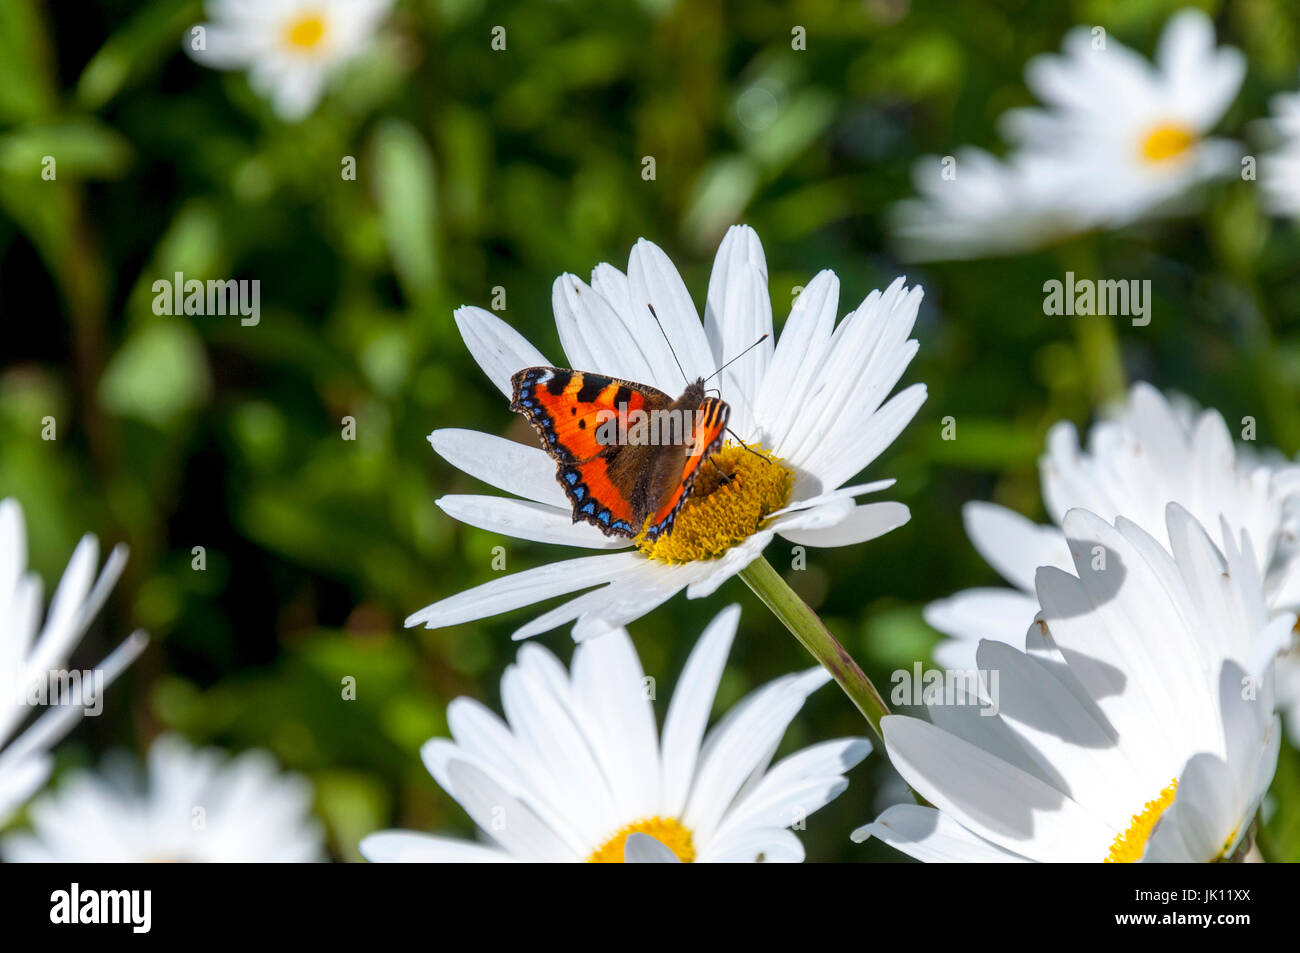 A small tortoiseshell butterfly, family Nymphalidae, Scientific name Aglais urticae alights on a ginat daisy flower - Stock Image